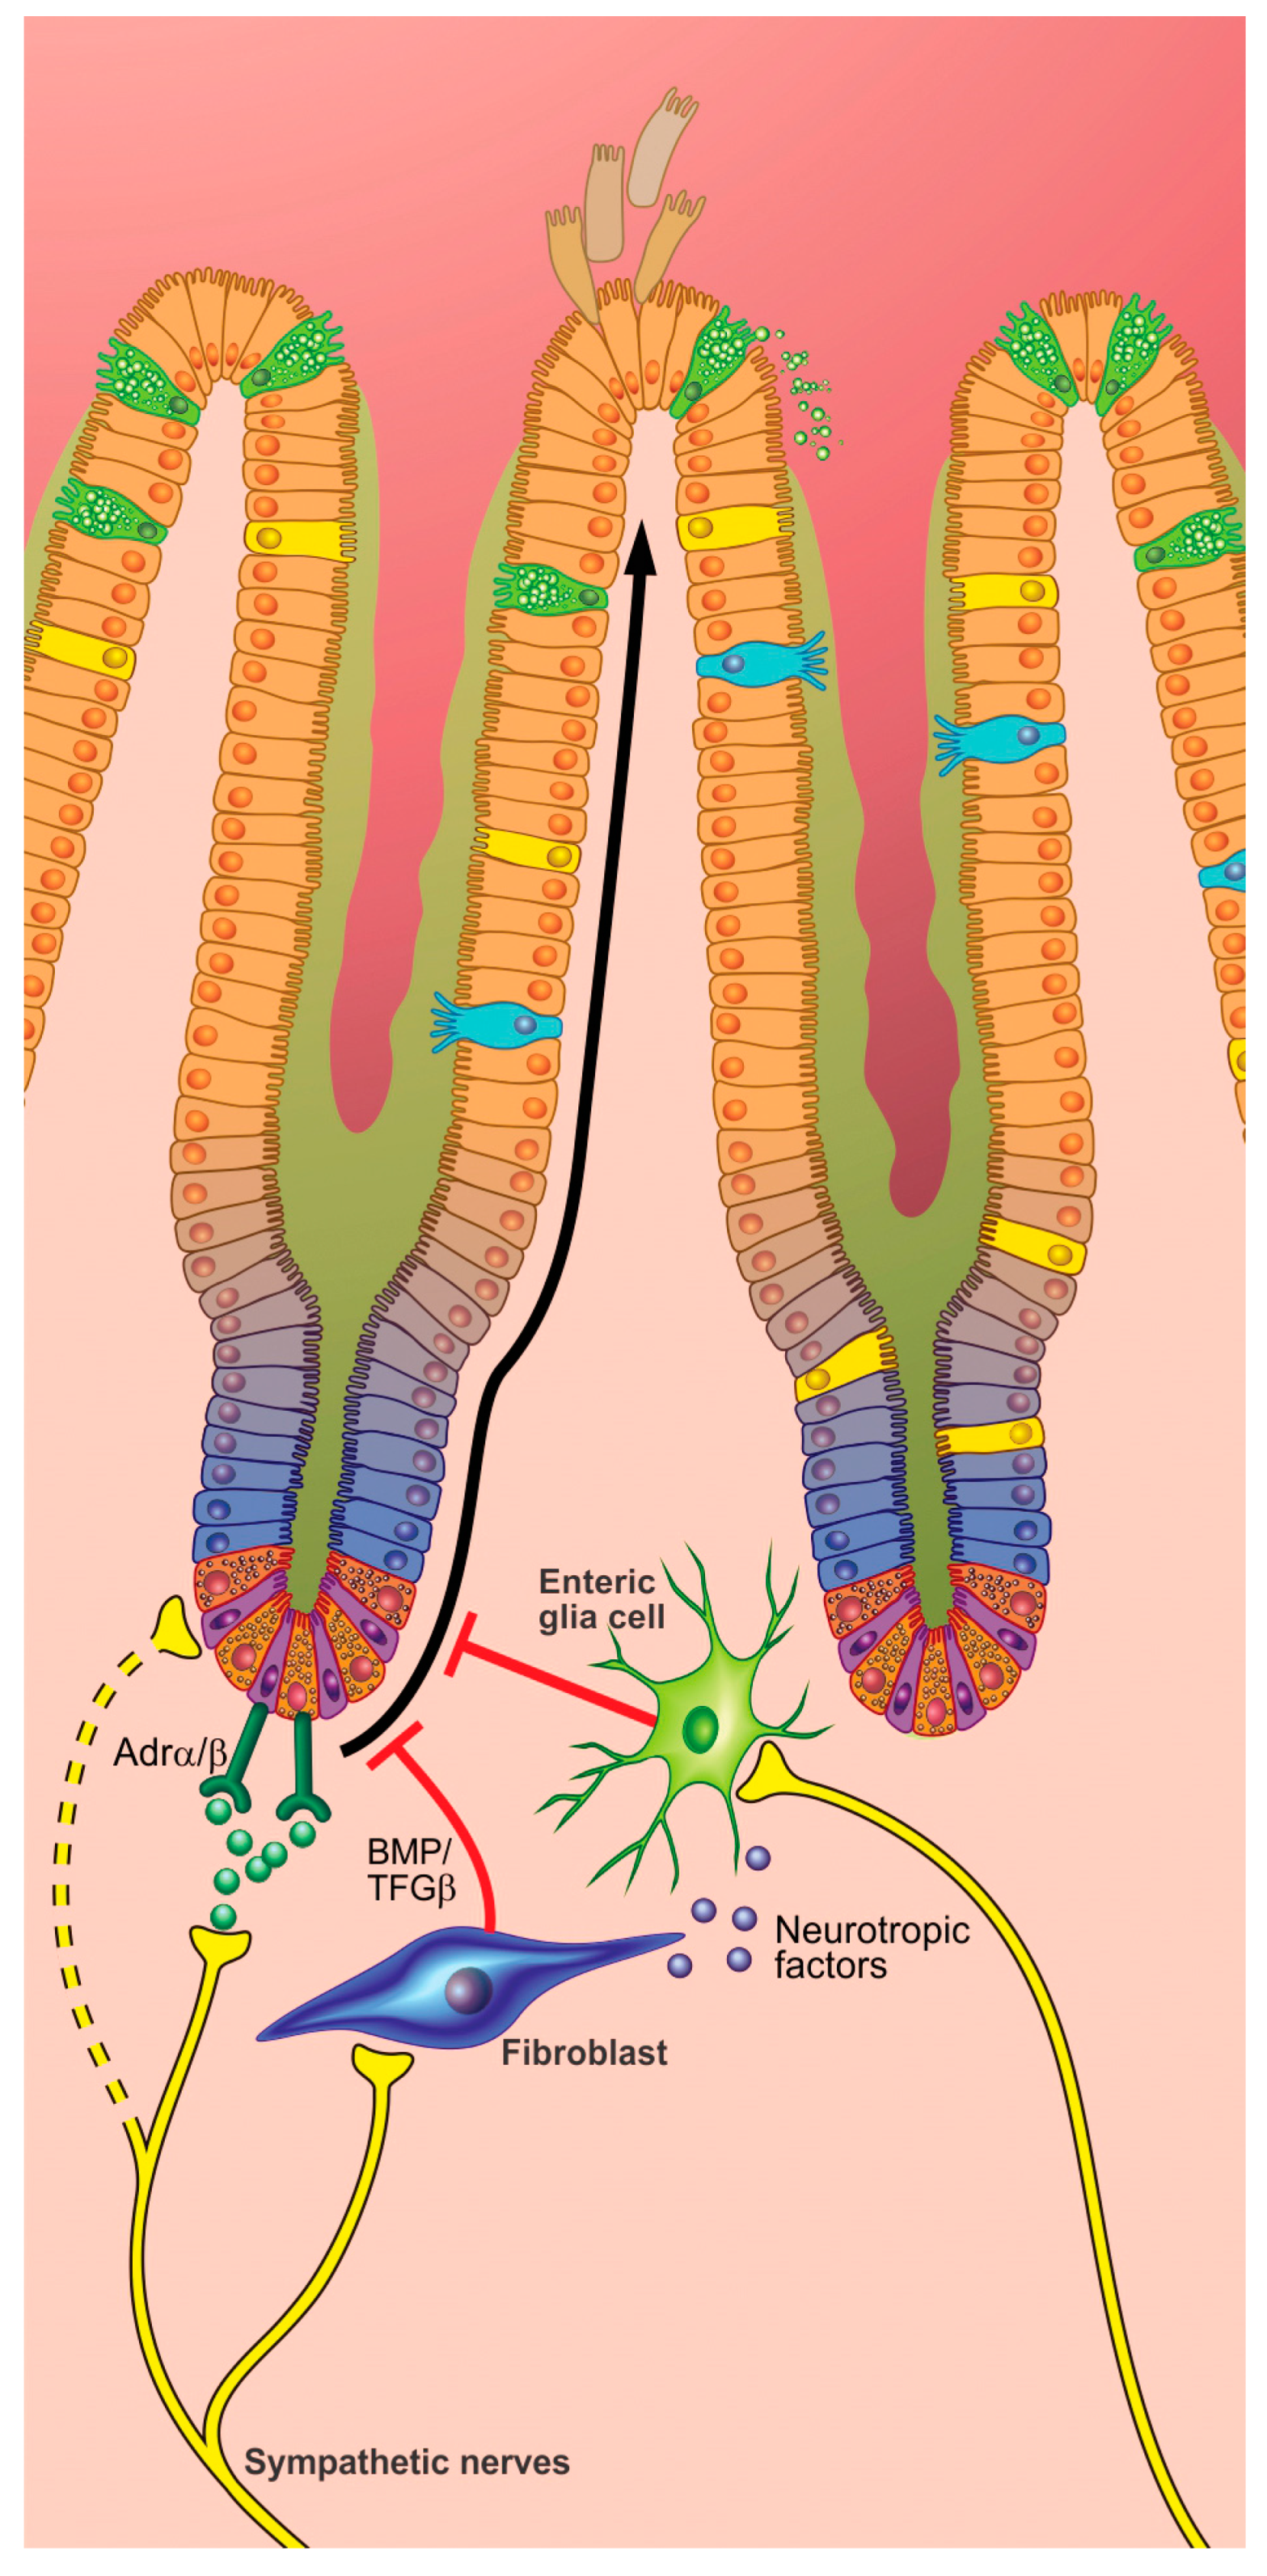 Cells | Free Full-Text | Neuroimmune Interactions in the Gut